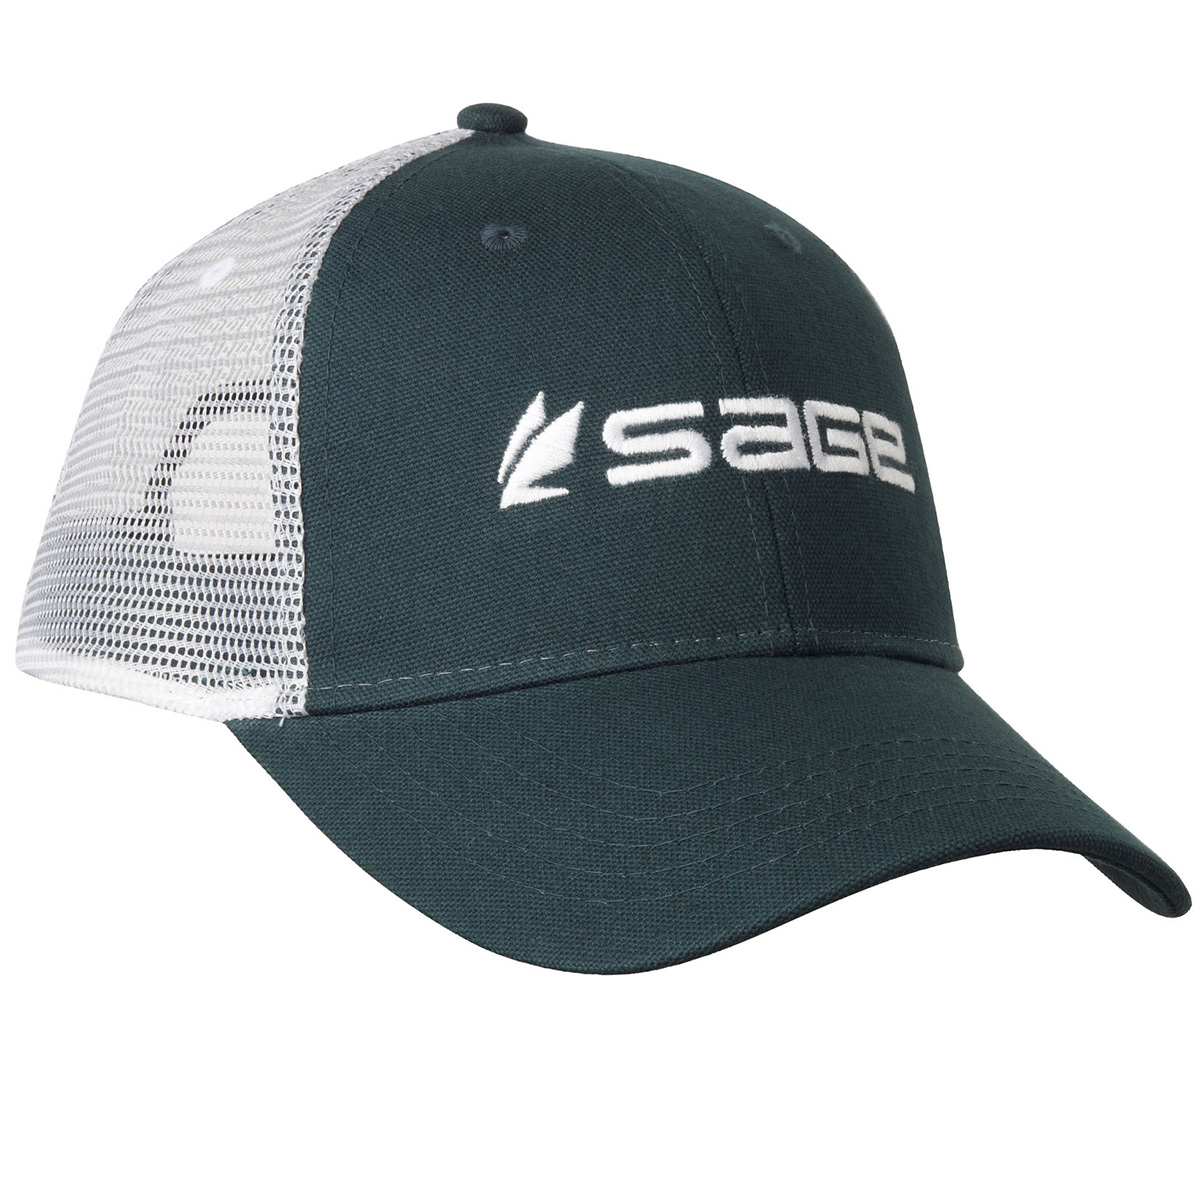 Sage trucker fishing caps ebay for Fishing trucker hats